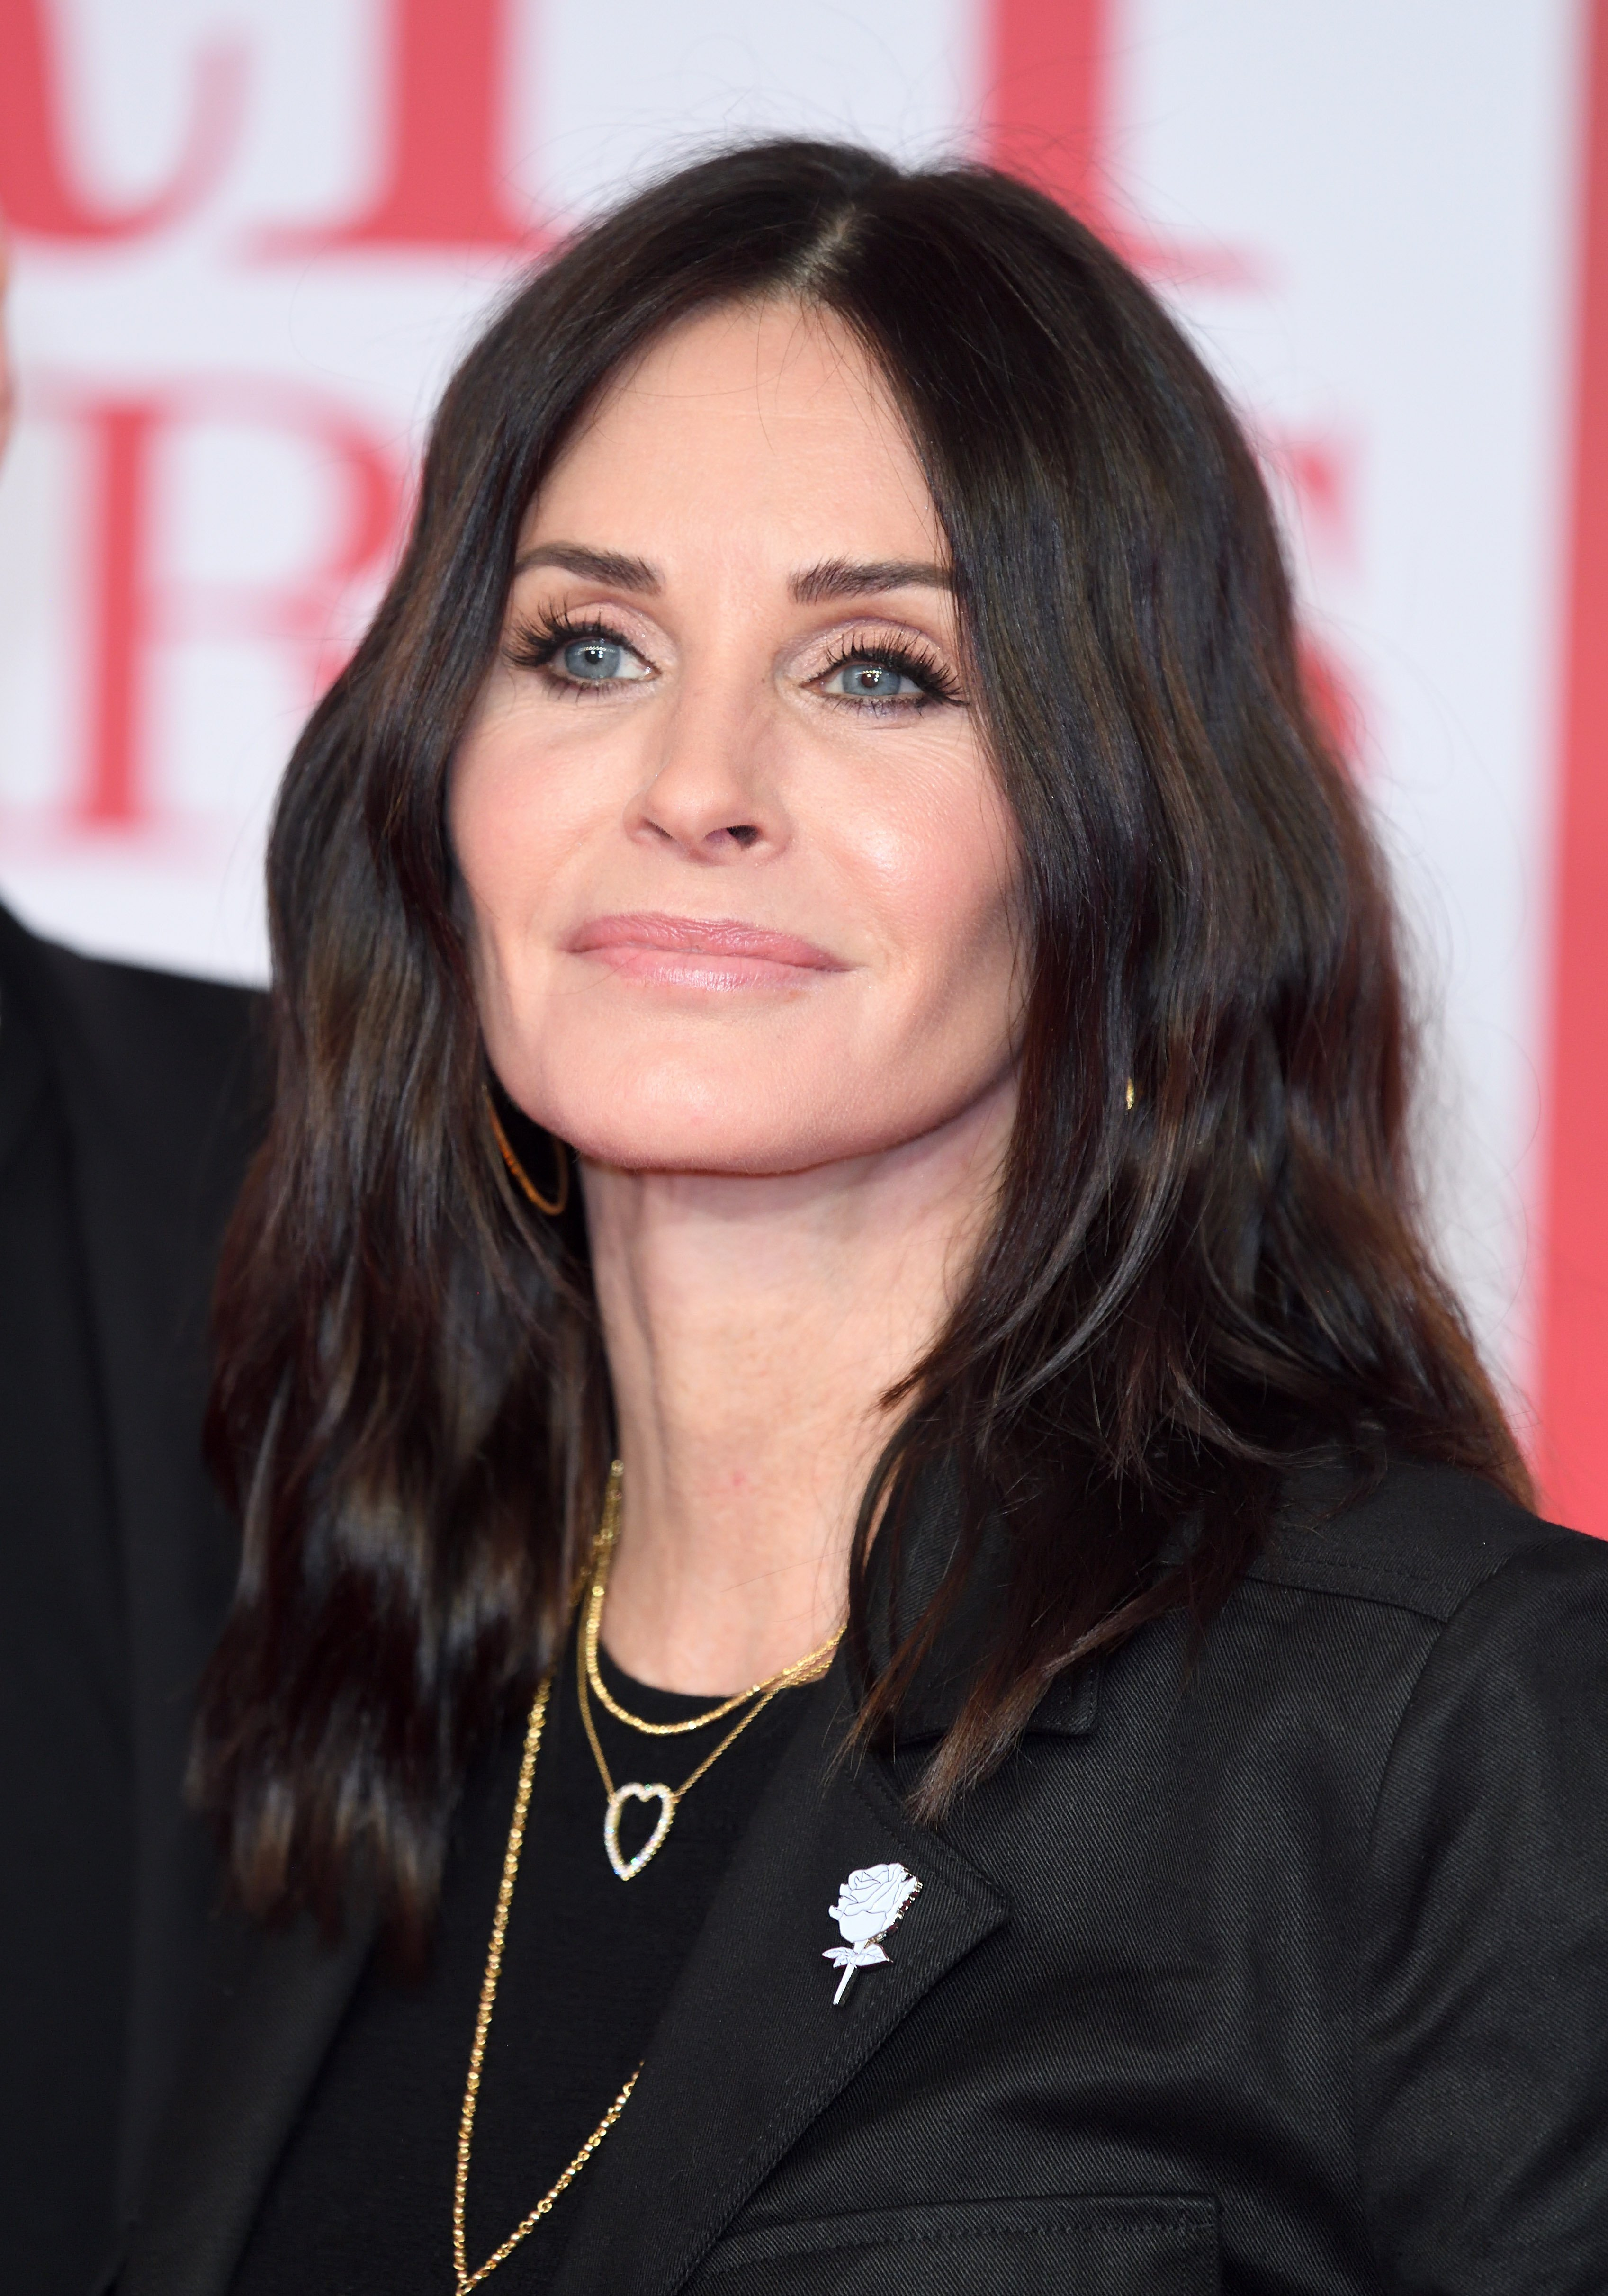 Courteney Cox attends The BRIT Awards 2018 held at The O2 Arena on February 21, 2018|Photo: Getty Images